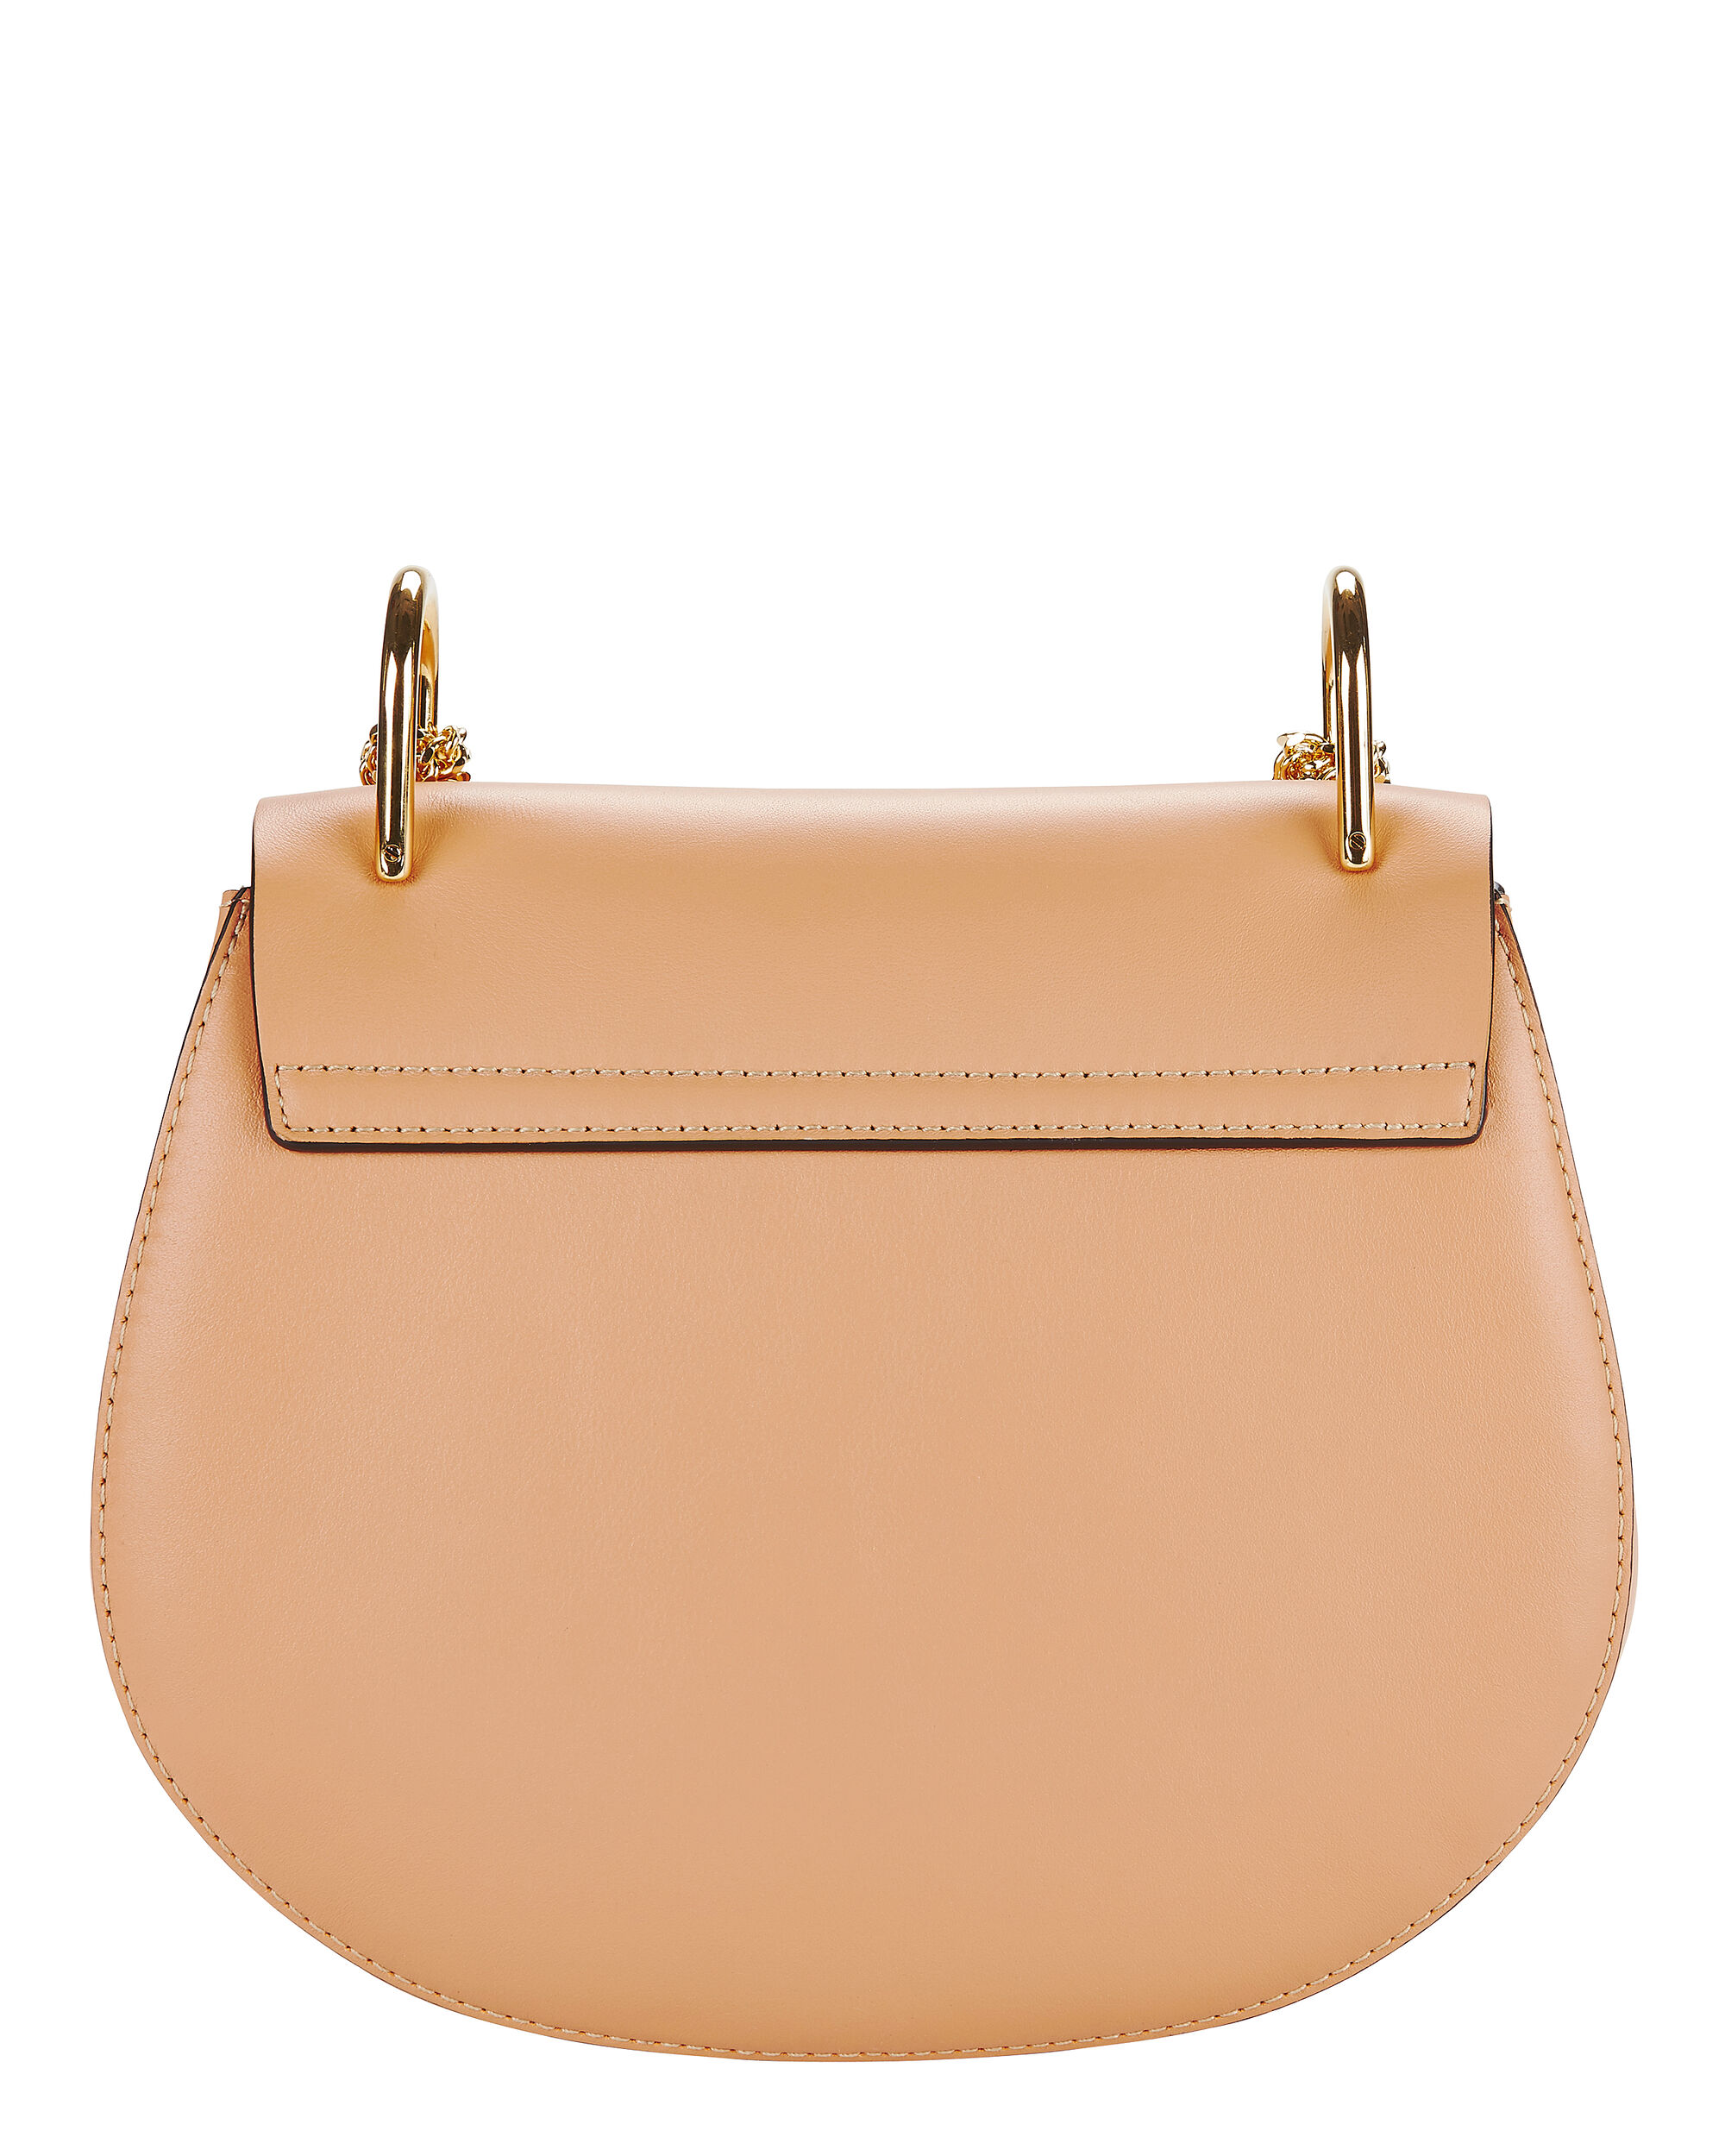 Drew Suede And Leather Shoulder Bag, BEIGE/KHAKI, hi-res